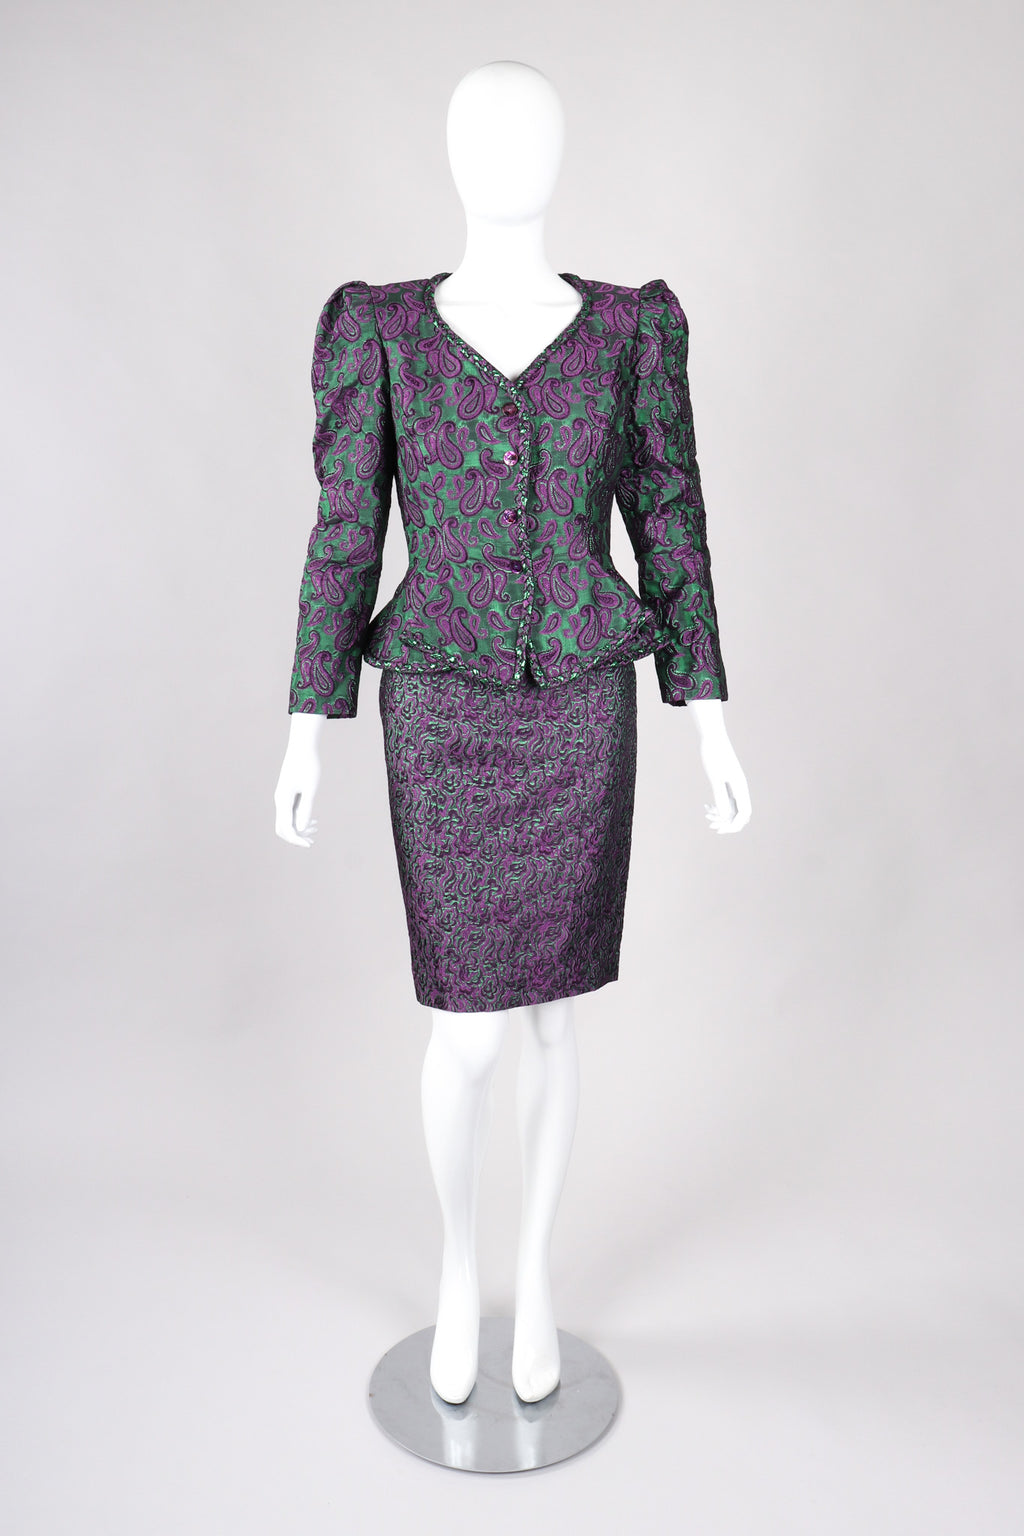 Recess Los Angeles Vintage Lilian Fell Metallic Lamé Paisley Peplum Jacket & Skirt Set